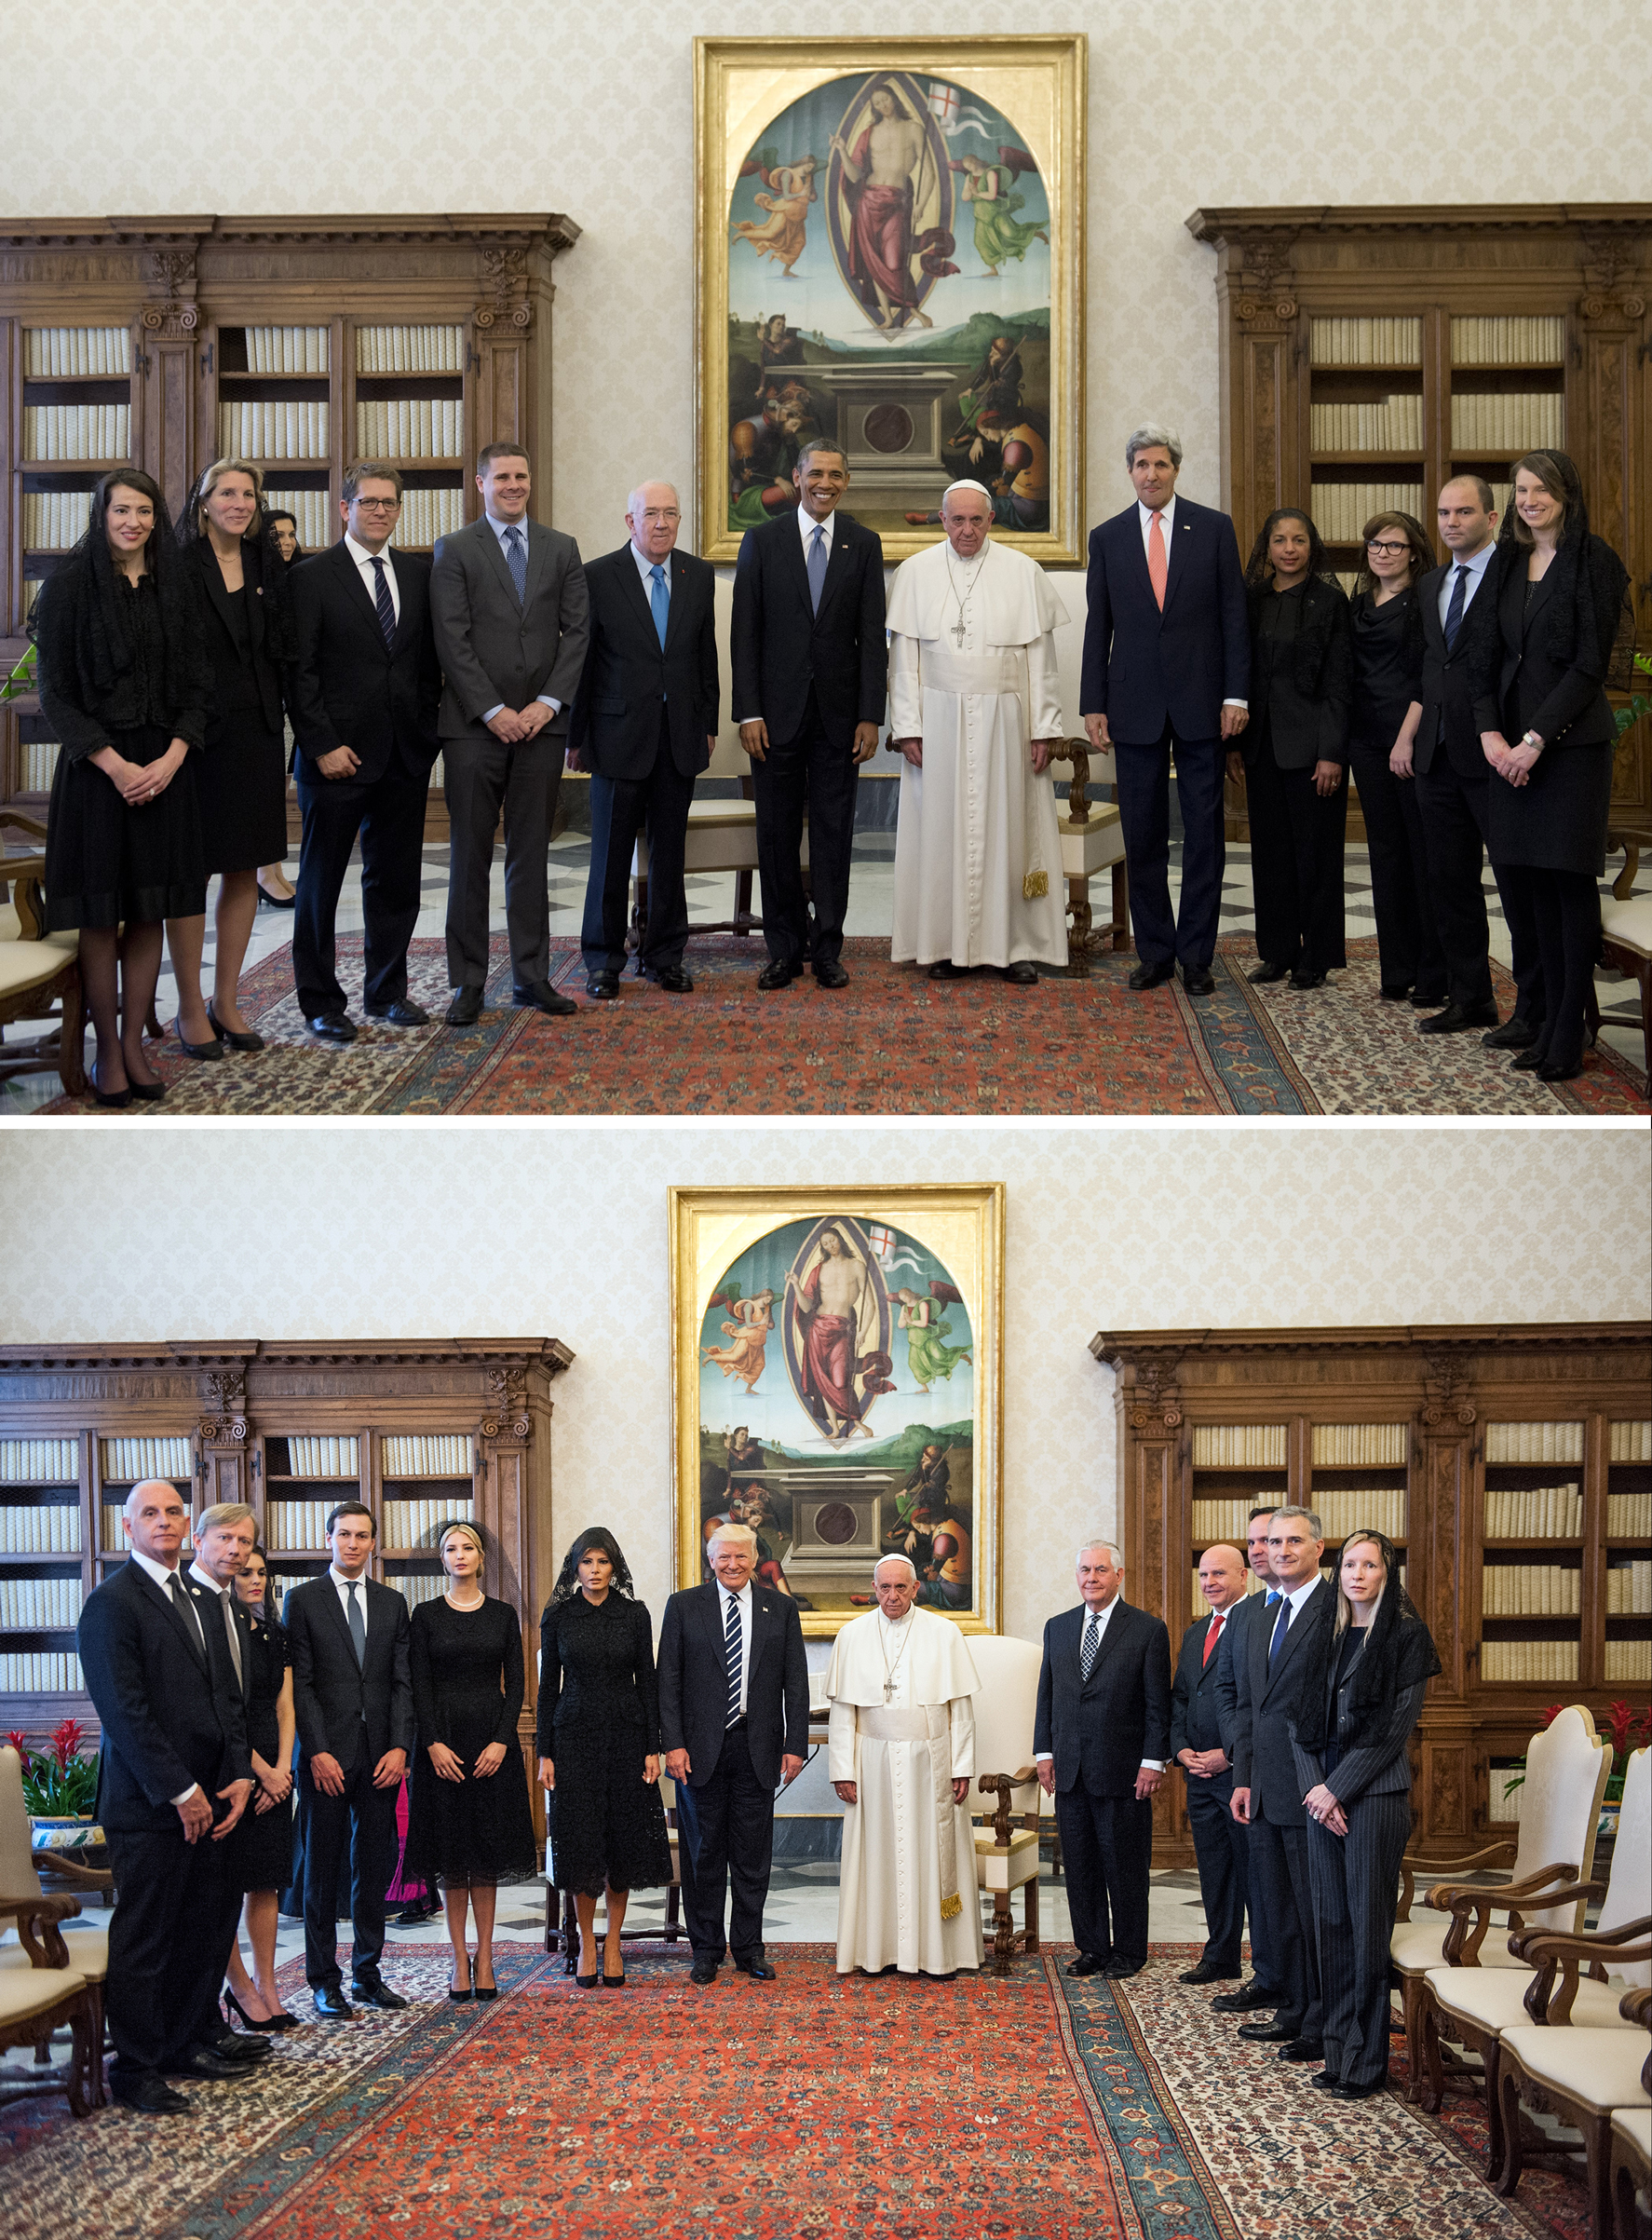 Top: President Obama and delegation meet Pope Francis in March 2014. Bottom: Trump and his delegation in May 2017.